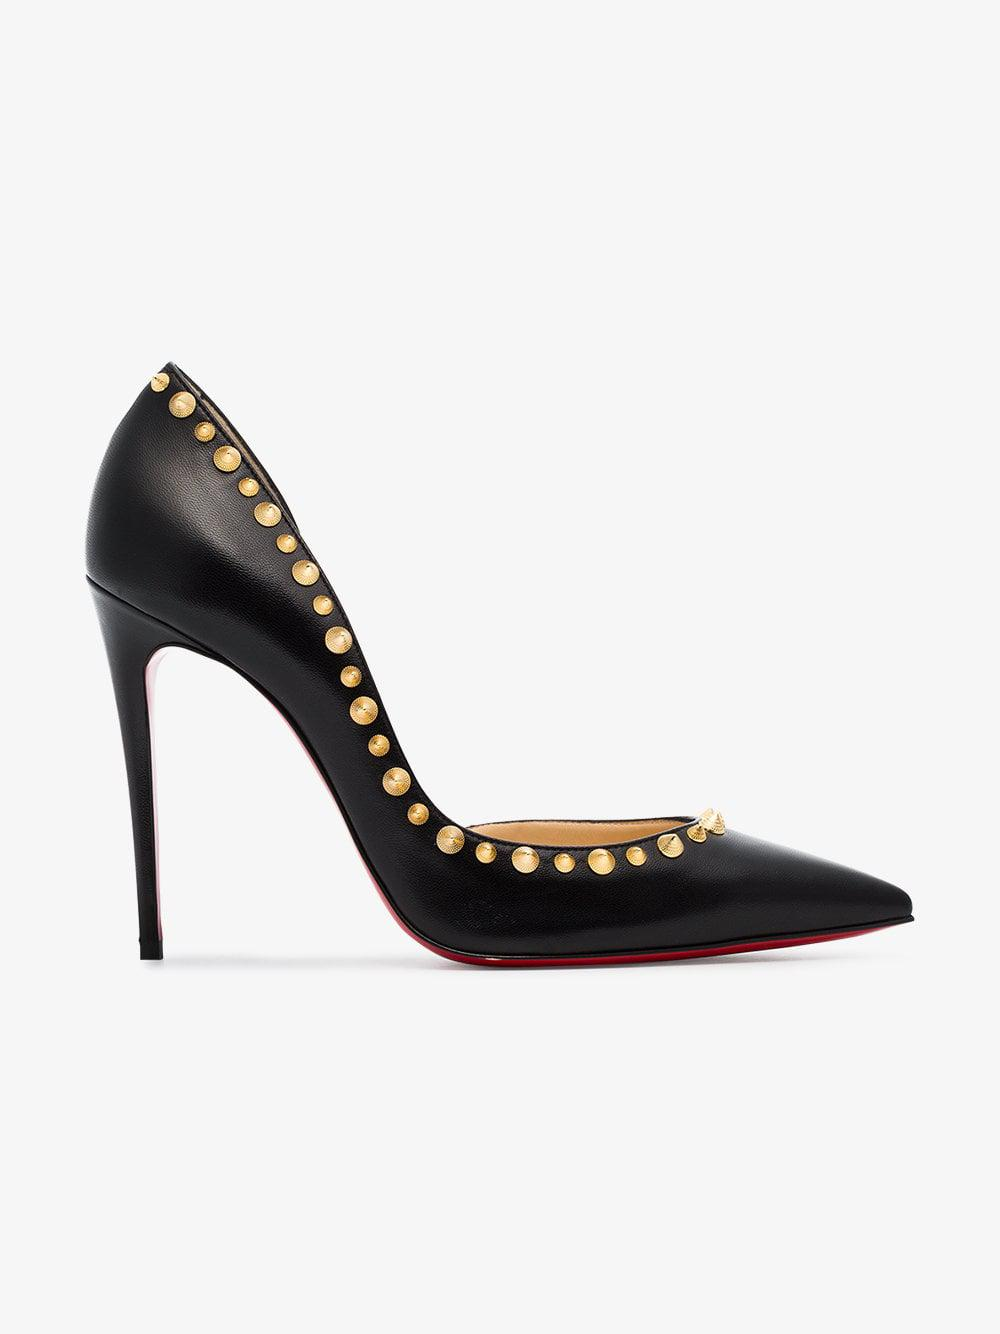 6054795fd17 Christian Louboutin Irishell 100 Studded Leather Pumps in Black - Lyst